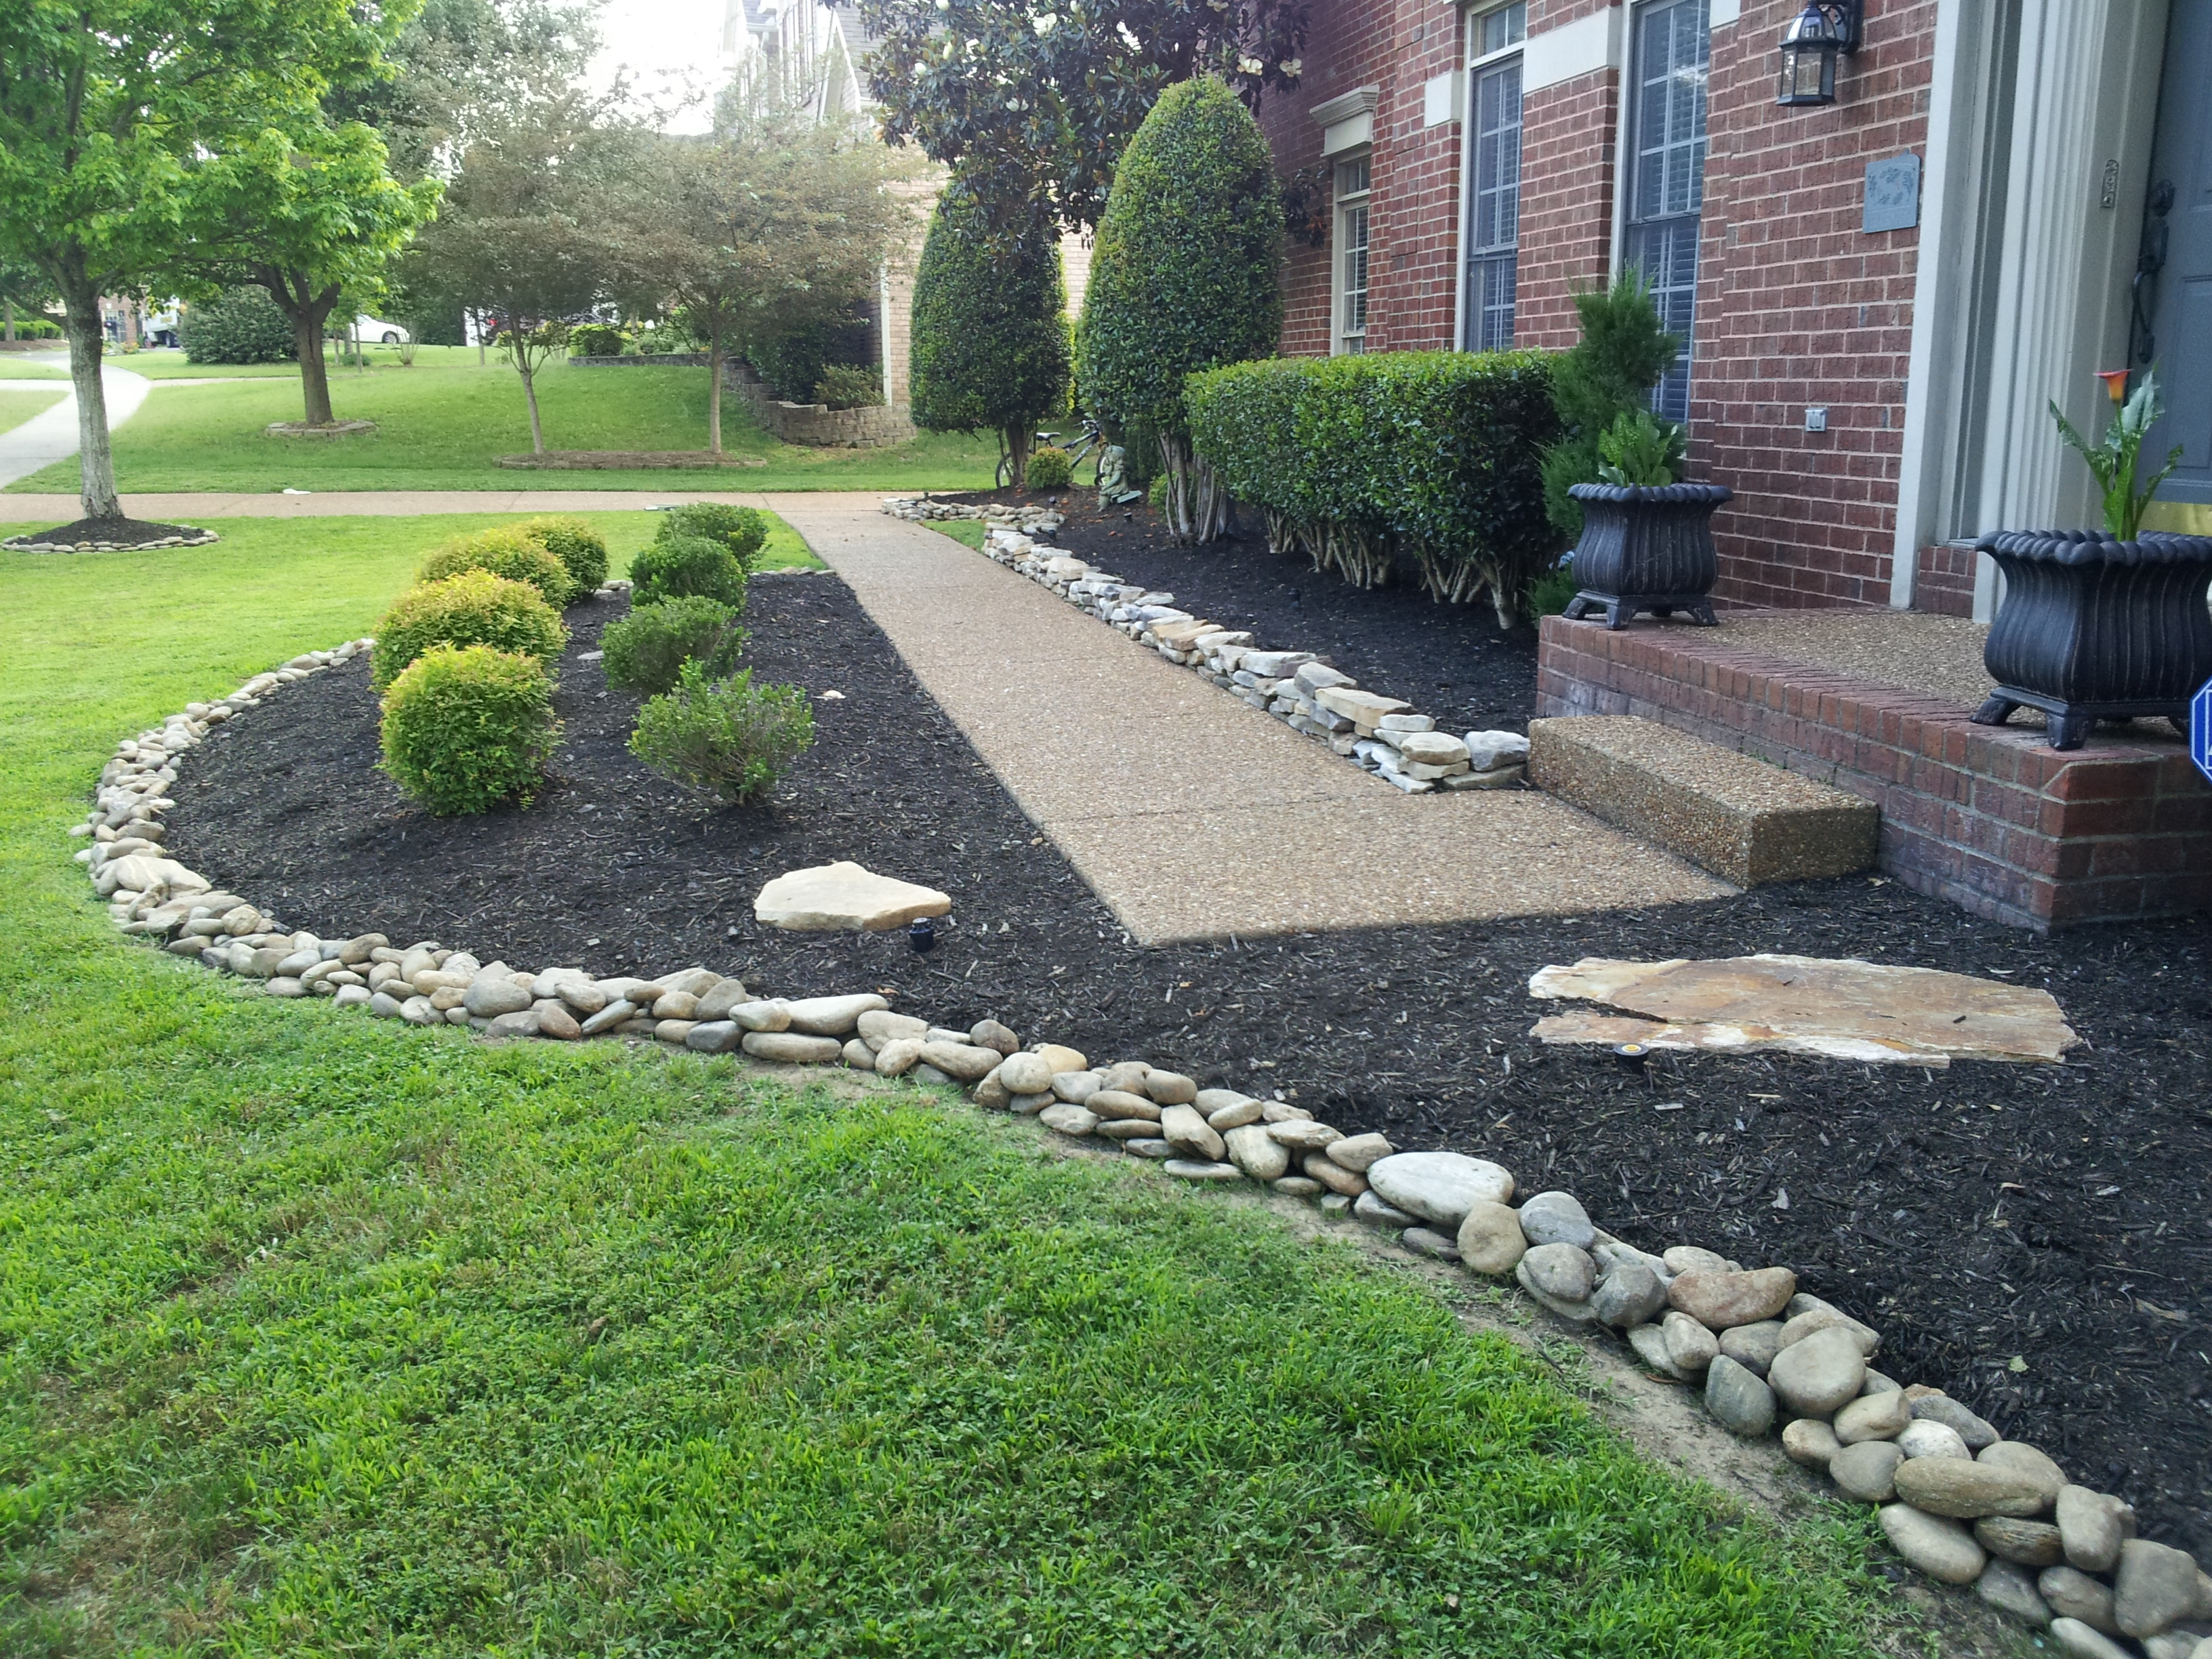 Landscaping With Stone Mulch Pictures : Landscaping rocks interior design ideas